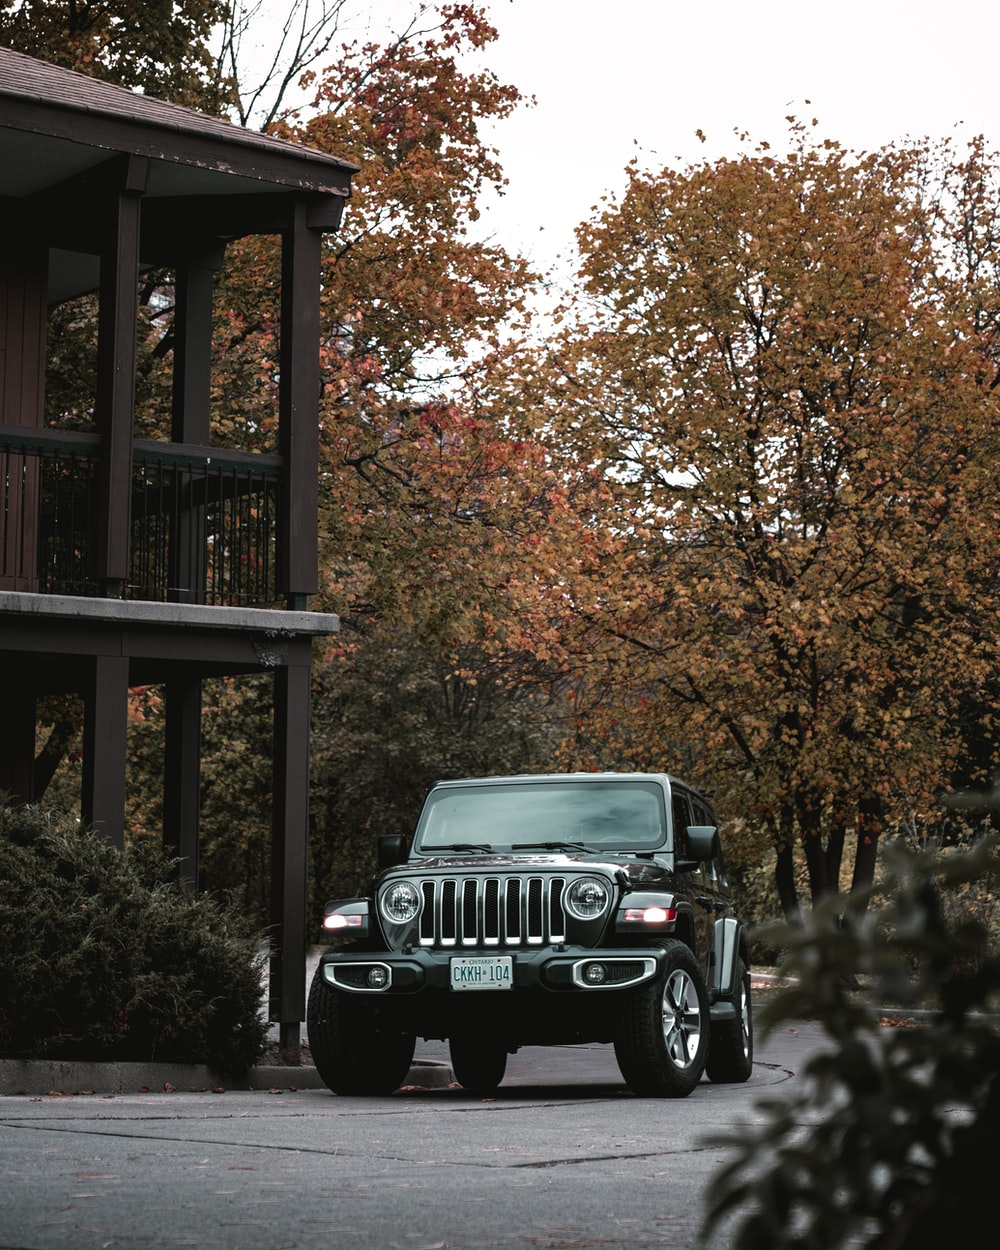 black jeep wrangler parked near brown tree during daytime